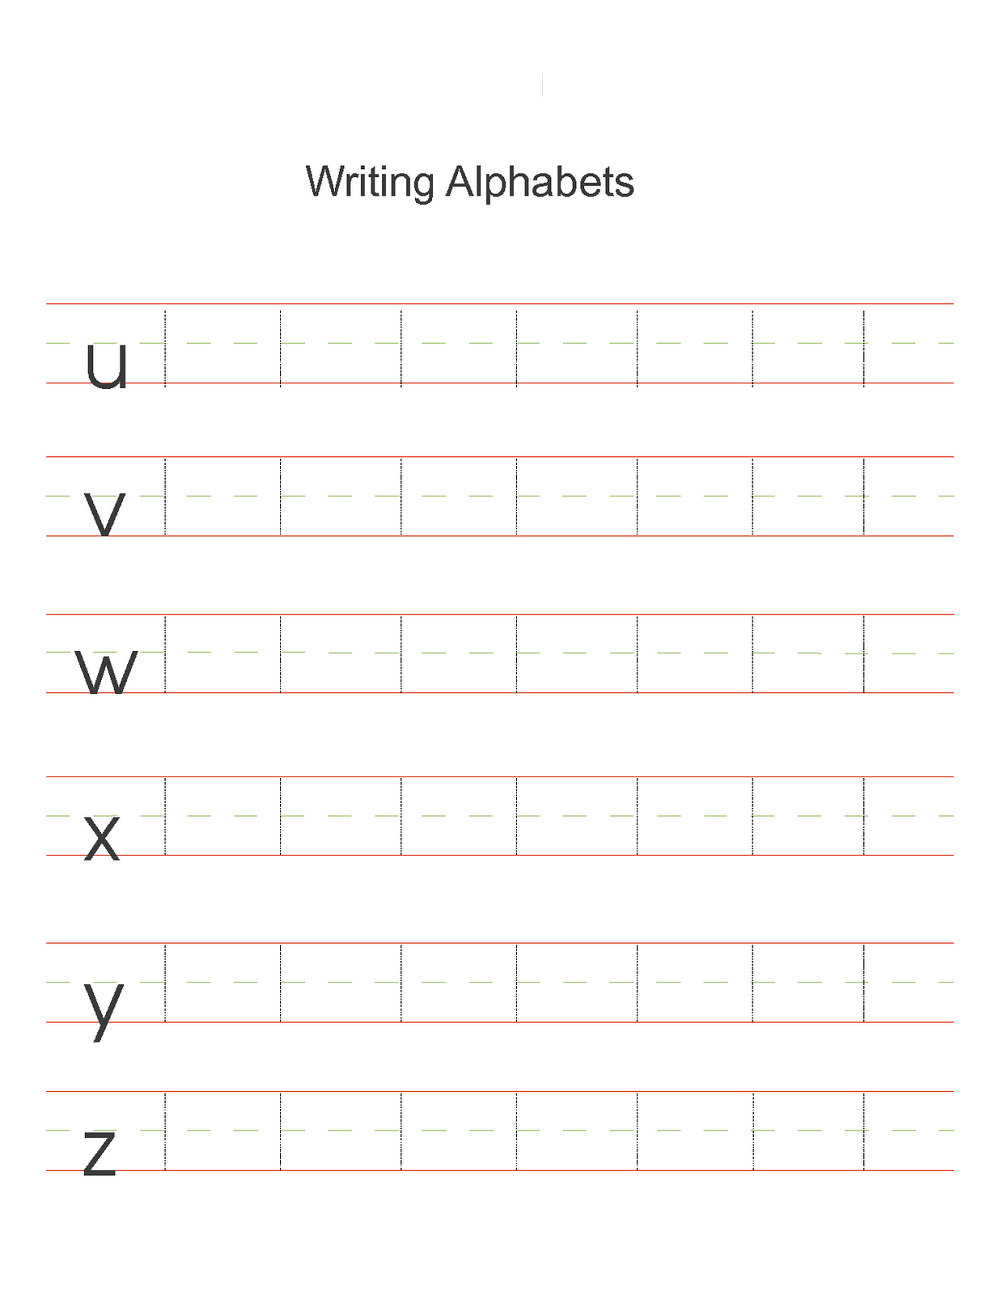 Alphabet Writing Practice Sheets For Preschoolers Worksheet inside Alphabet Handwriting Worksheets Free Printables